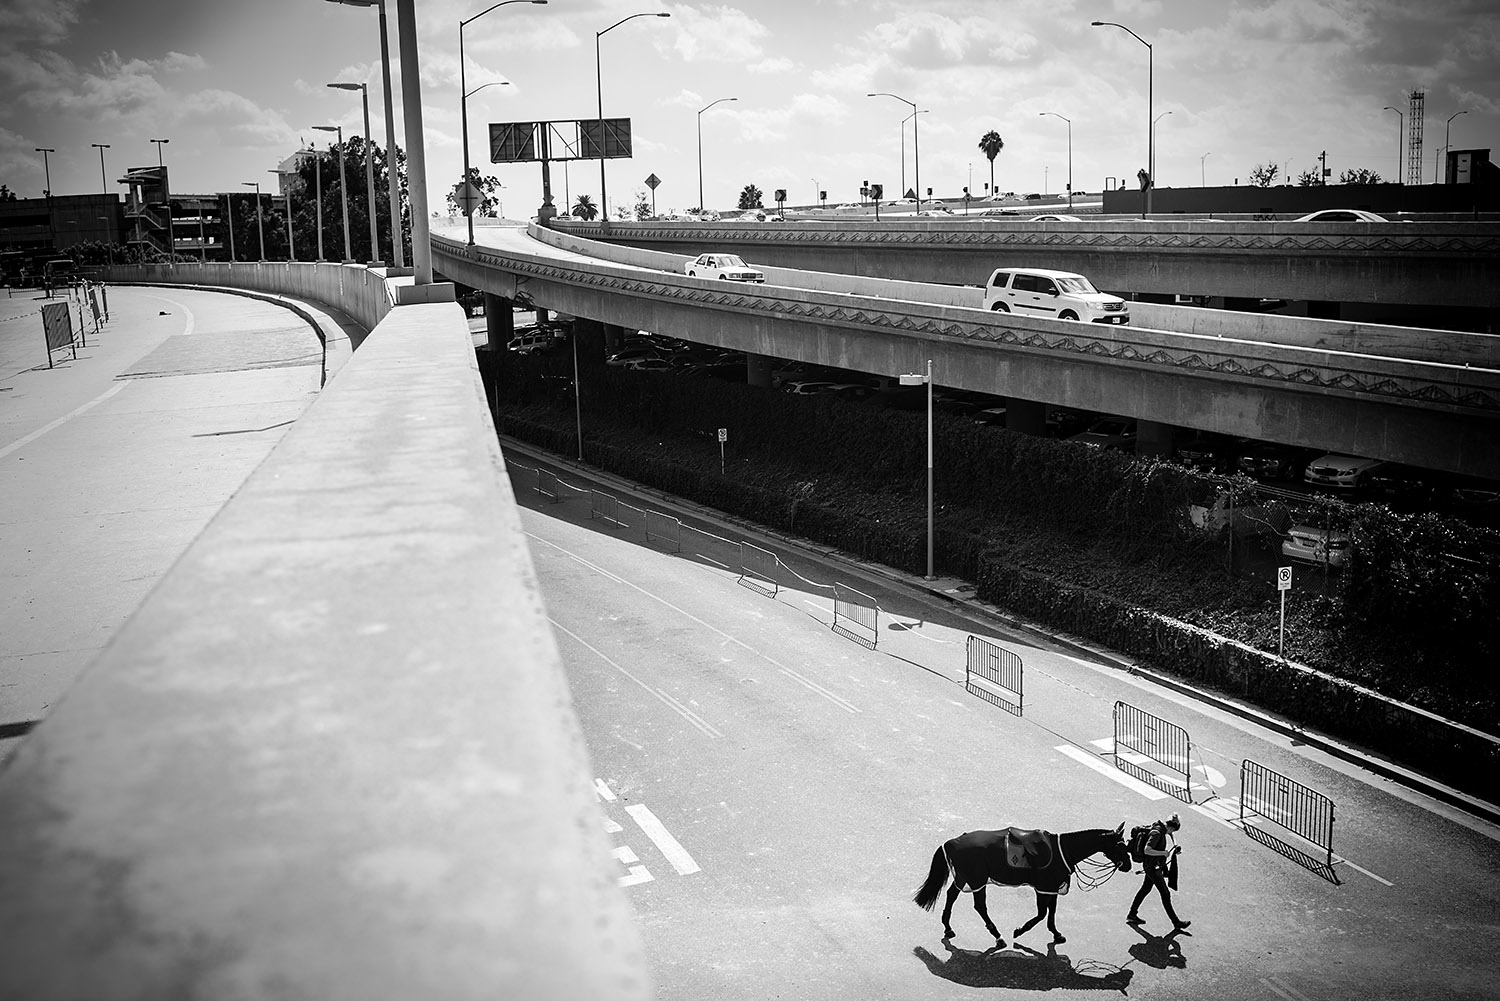 LOS ANGELES, CA - SEPTEMBER 28: A horse is walked from the parking lot to the main event space at the LA Convention Center. 2014's competition, the first major international equestrian event in L.A. since the 1984 Olympics, was held in more than 27,000 square feet of the Los Angeles Convention Center.